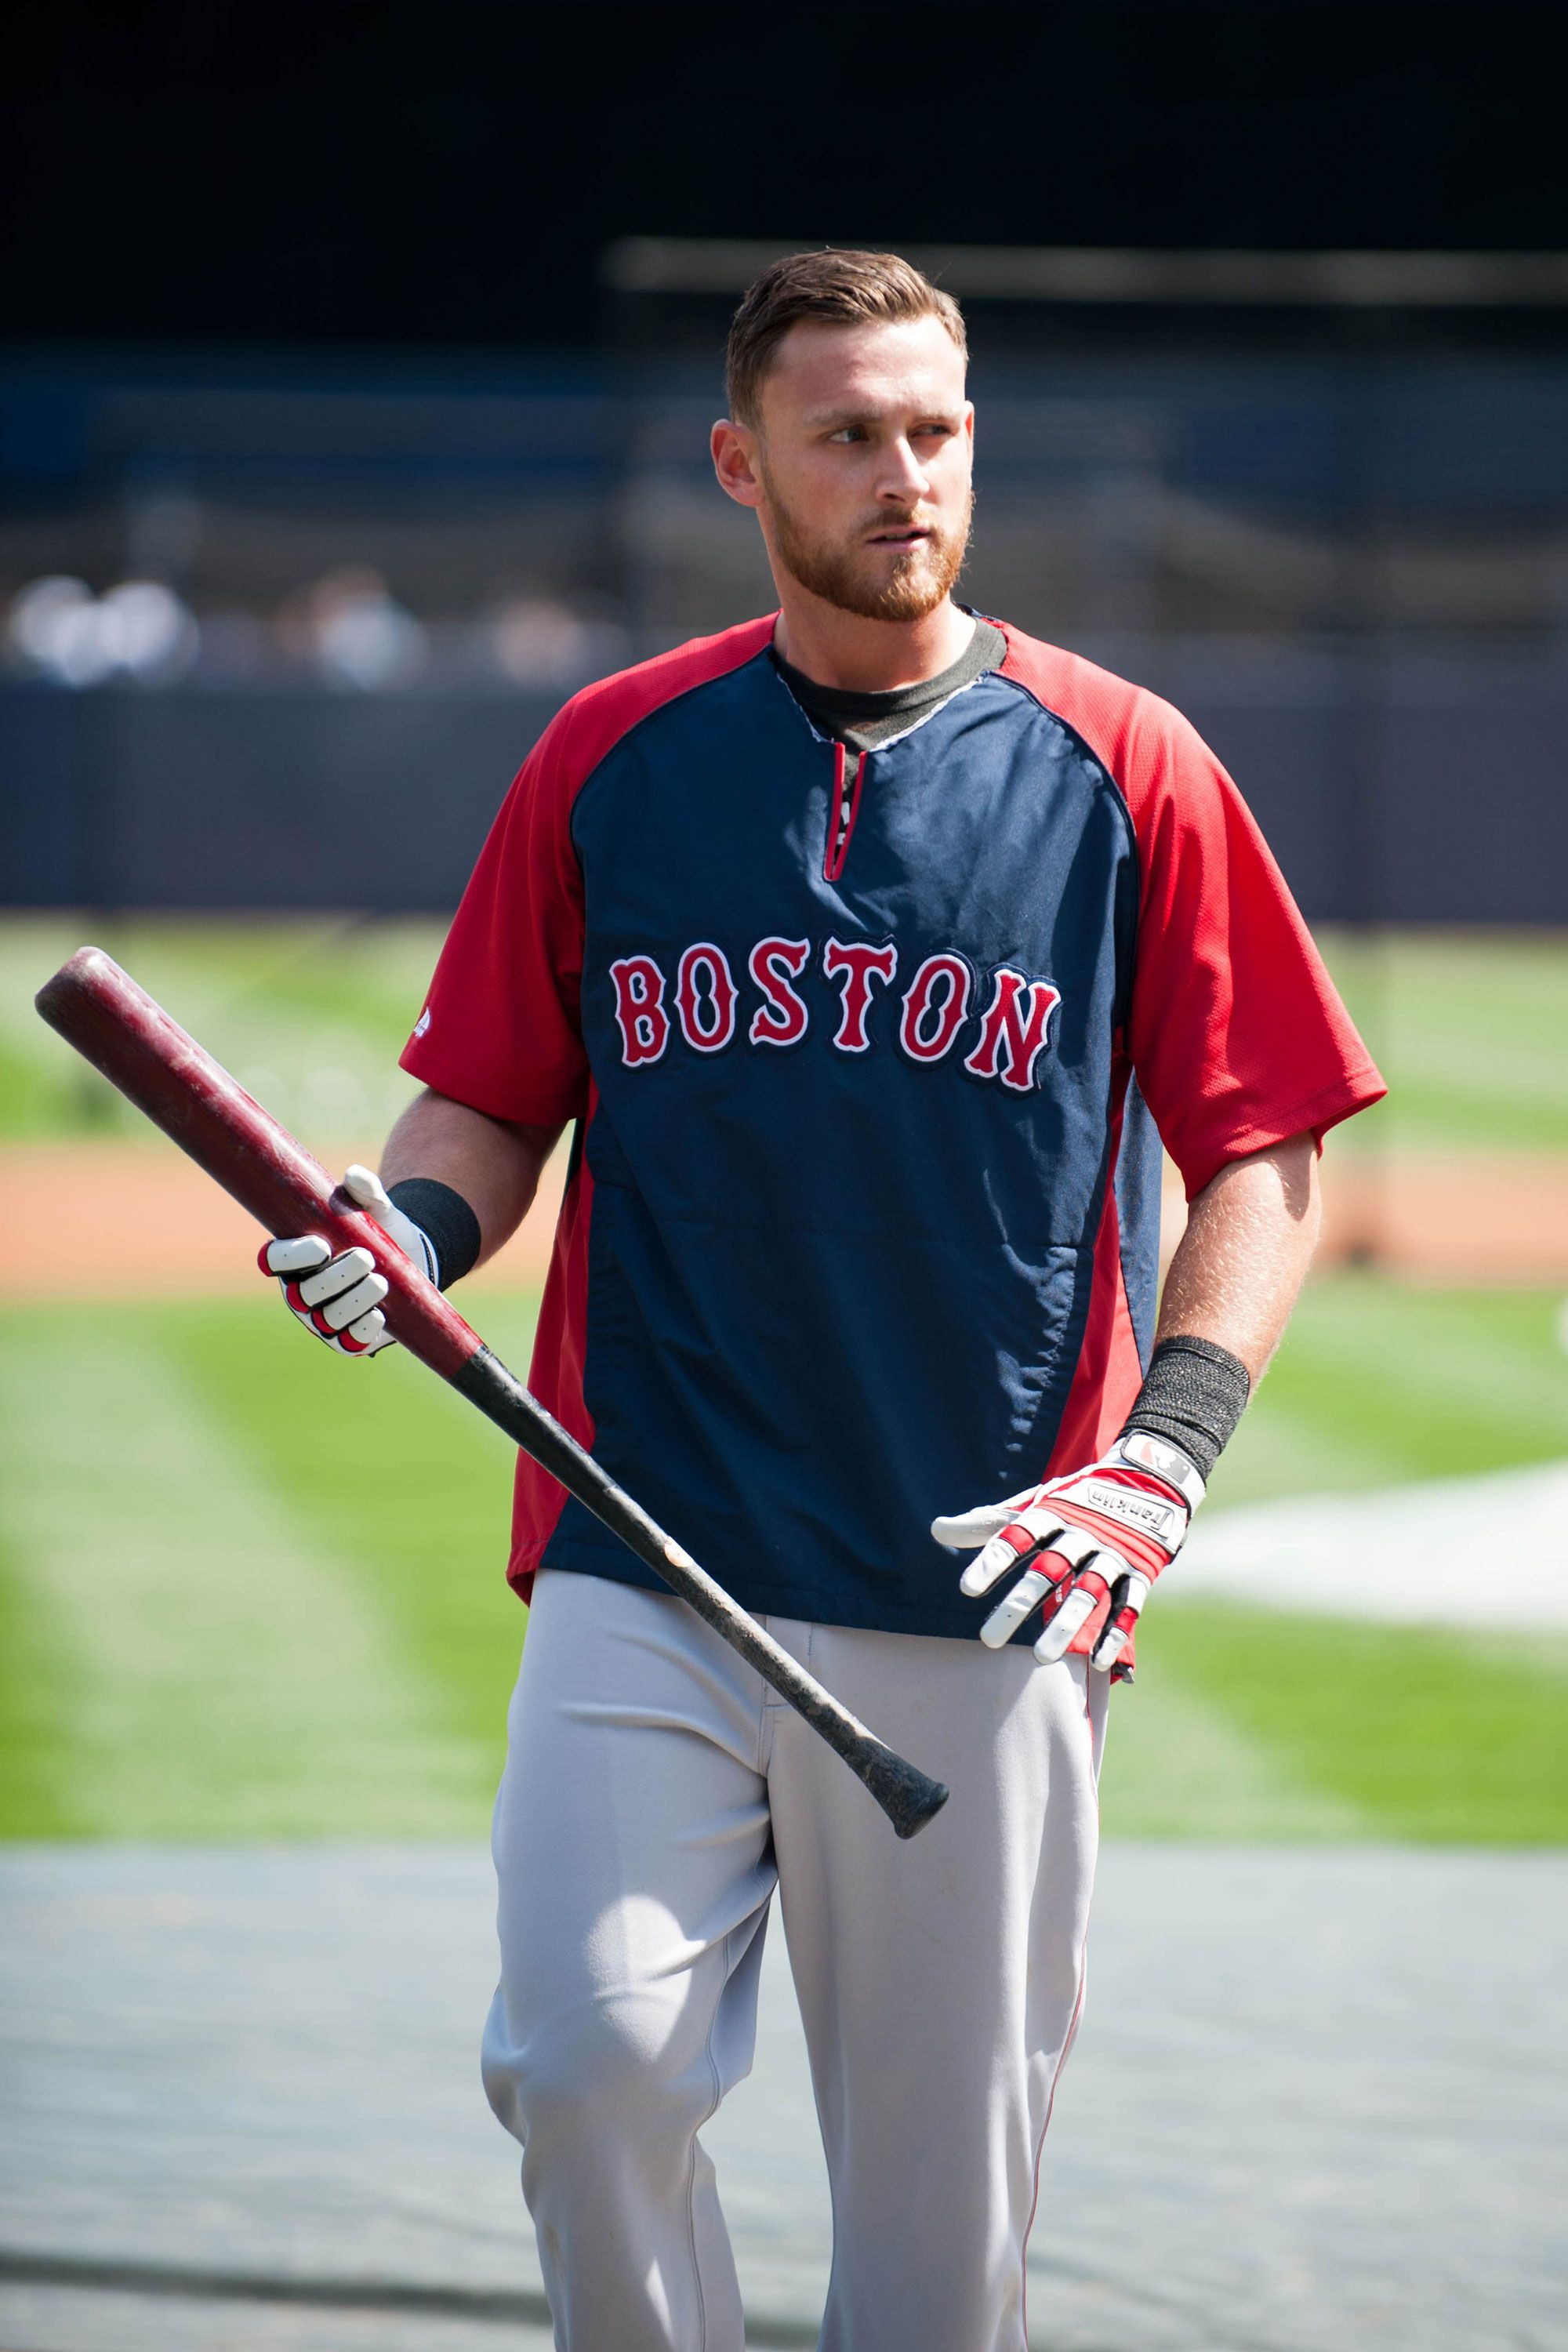 ae33f74d9 Hottest MLB Players - 40 Hot Baseball Players